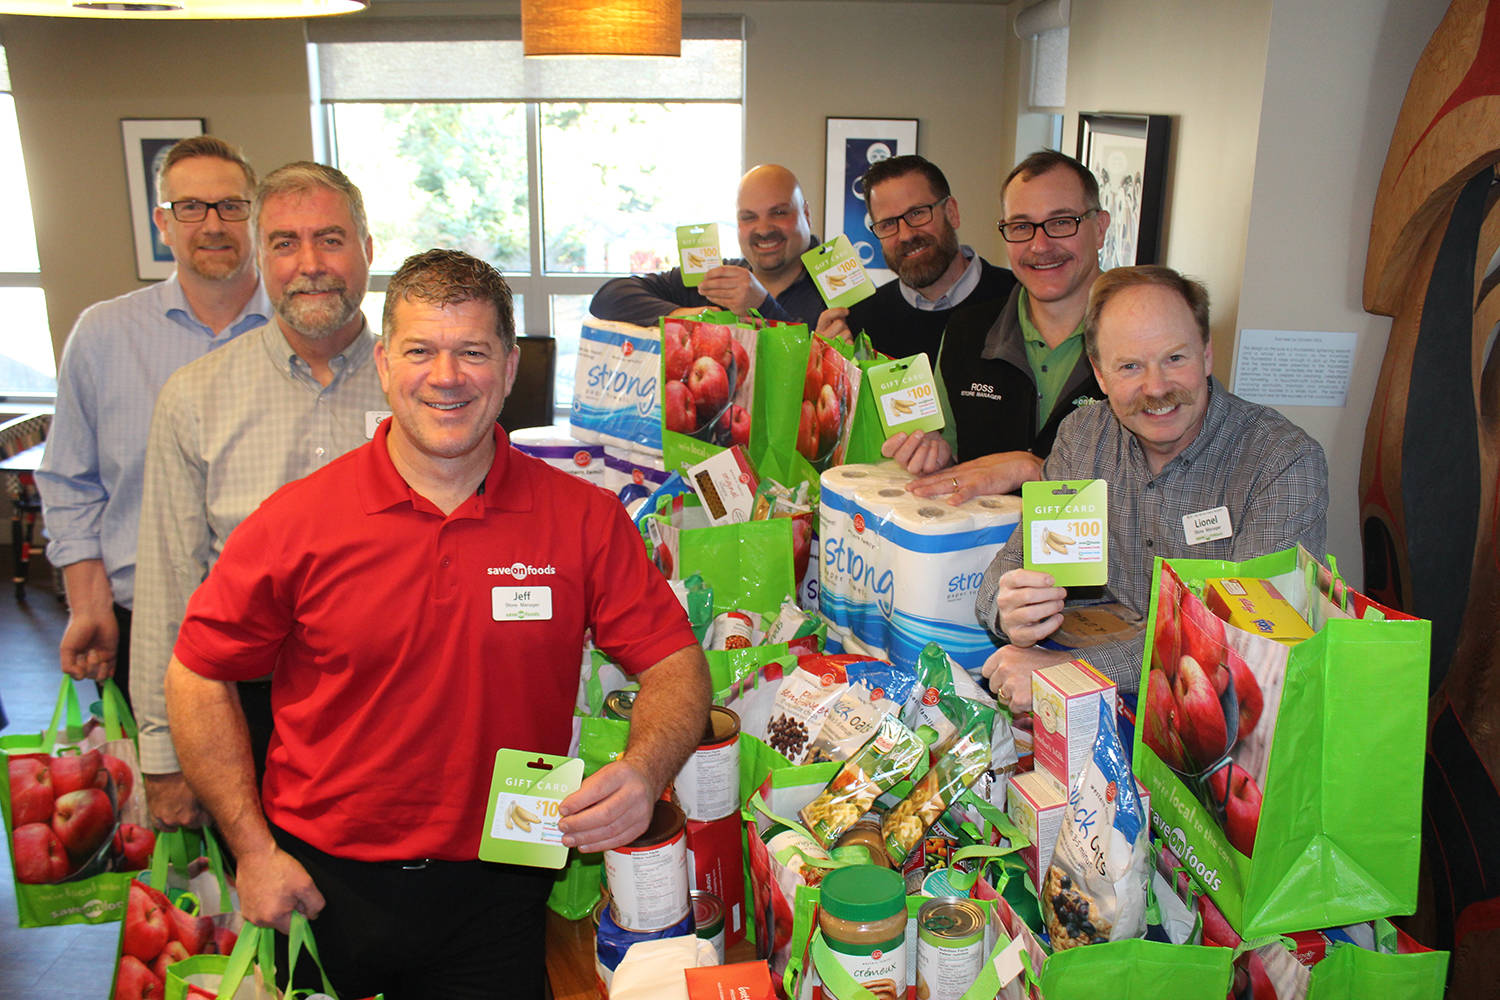 Dave Alexander (Sidney), George Clarke (University Heights), Jeff MacLeod (Westside Village), flank the left side, while Paul Anacelto (Langford), Roger Junker (Saanich), Ross Prendergast (Tillicum), and Lionel Gjerde (Fort and Foul Bay) flank the right side of the items their respective stores donated to the kitchen of Jeneece Place earlier this month. (Wolf Depner/News staff)